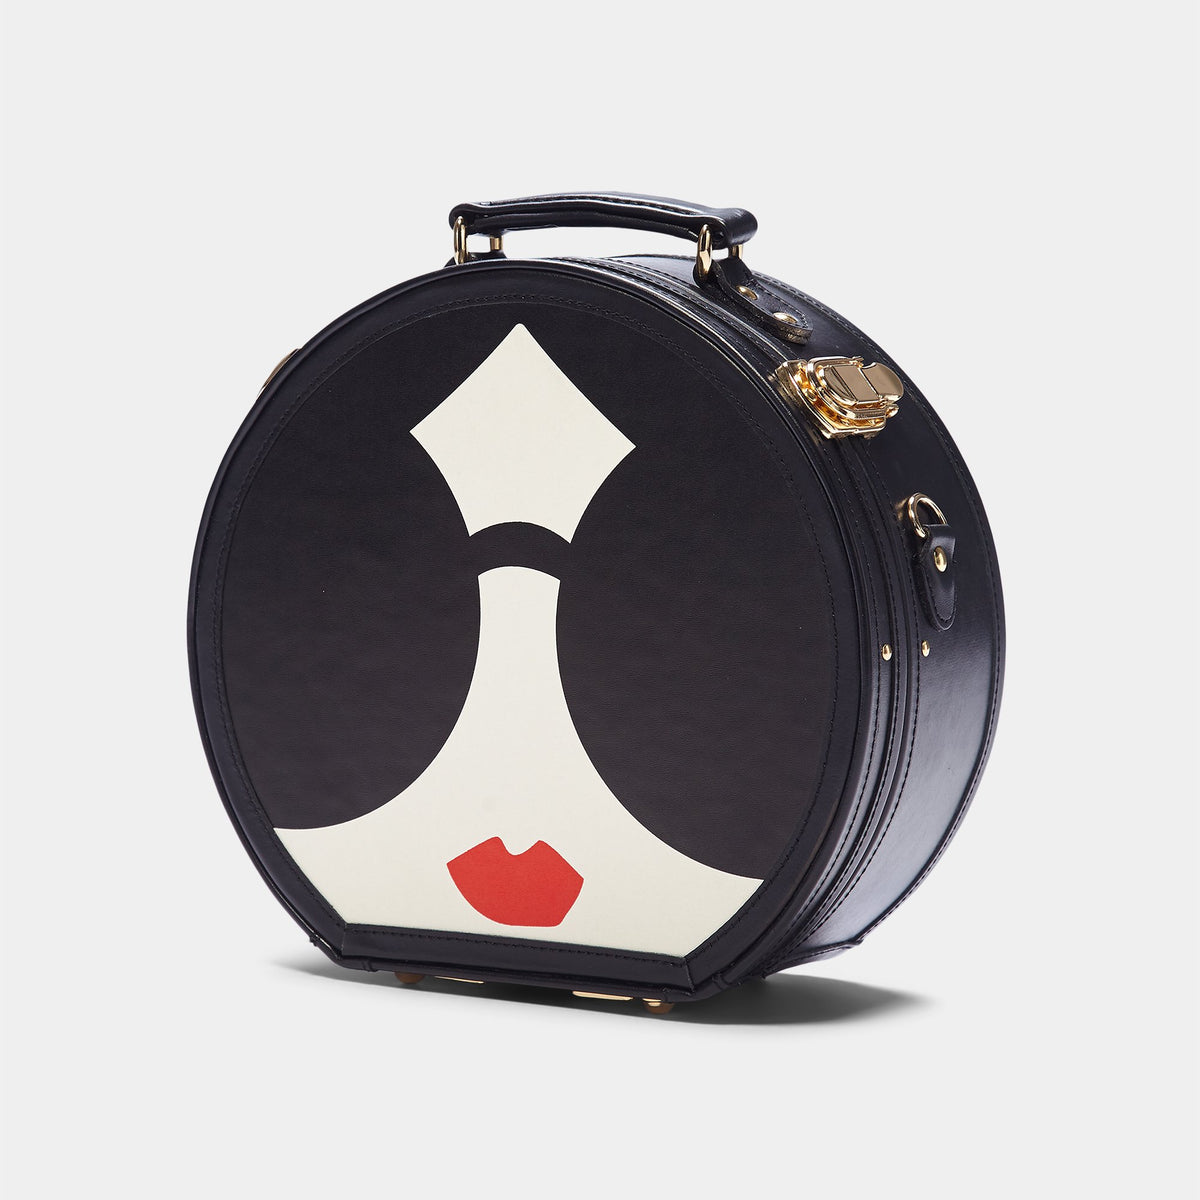 The alice + olivia X SteamLine - Small Hatbox